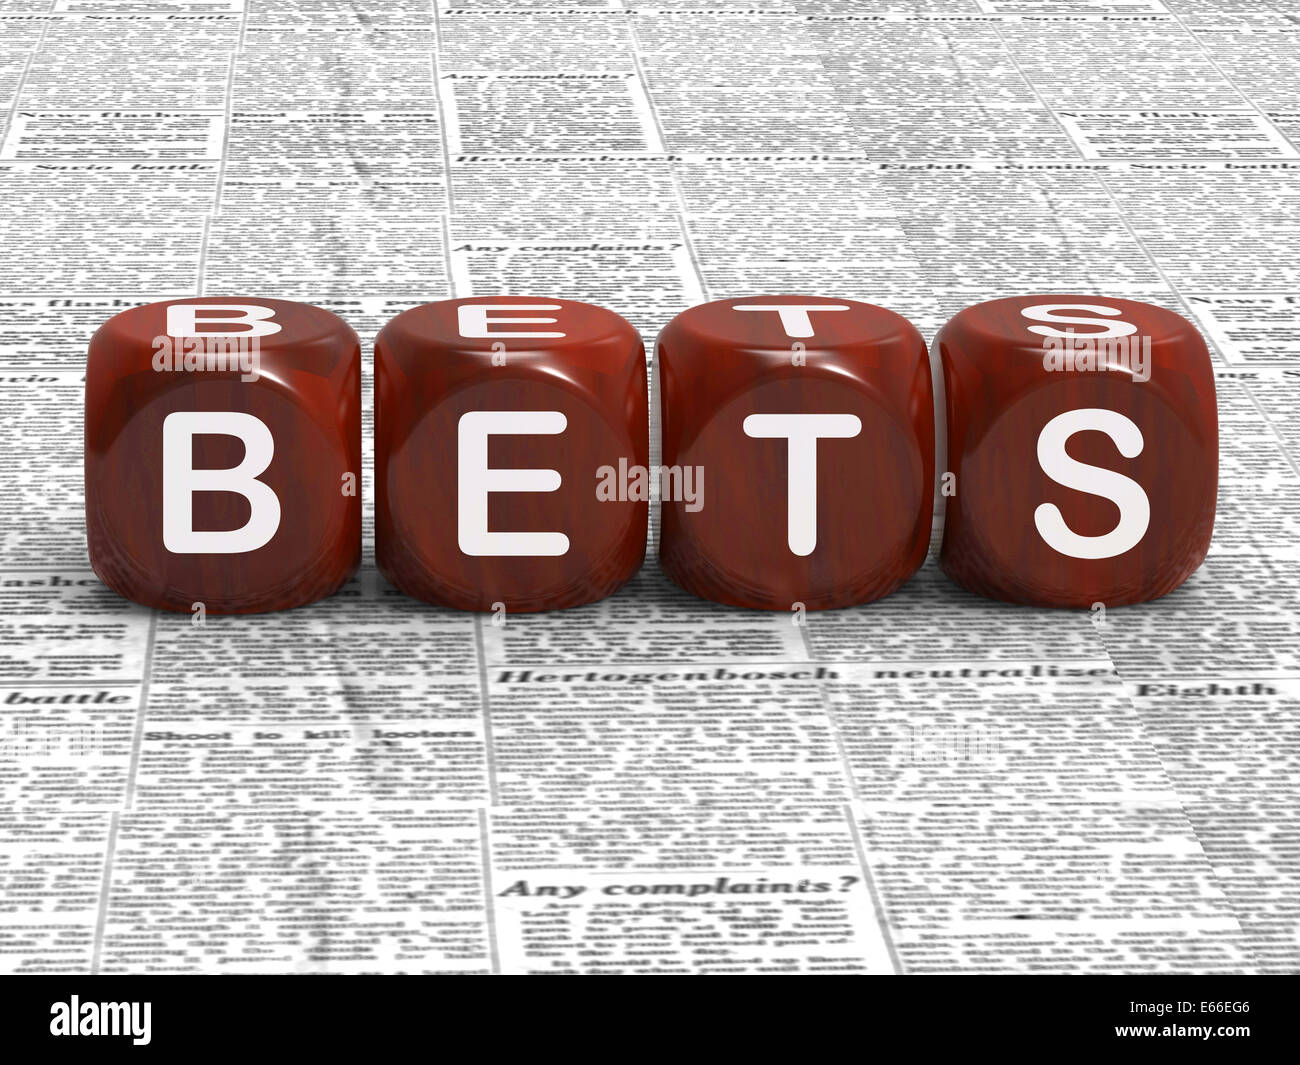 Bets Dice Meaning Gambling Risk And Betting - Stock Image